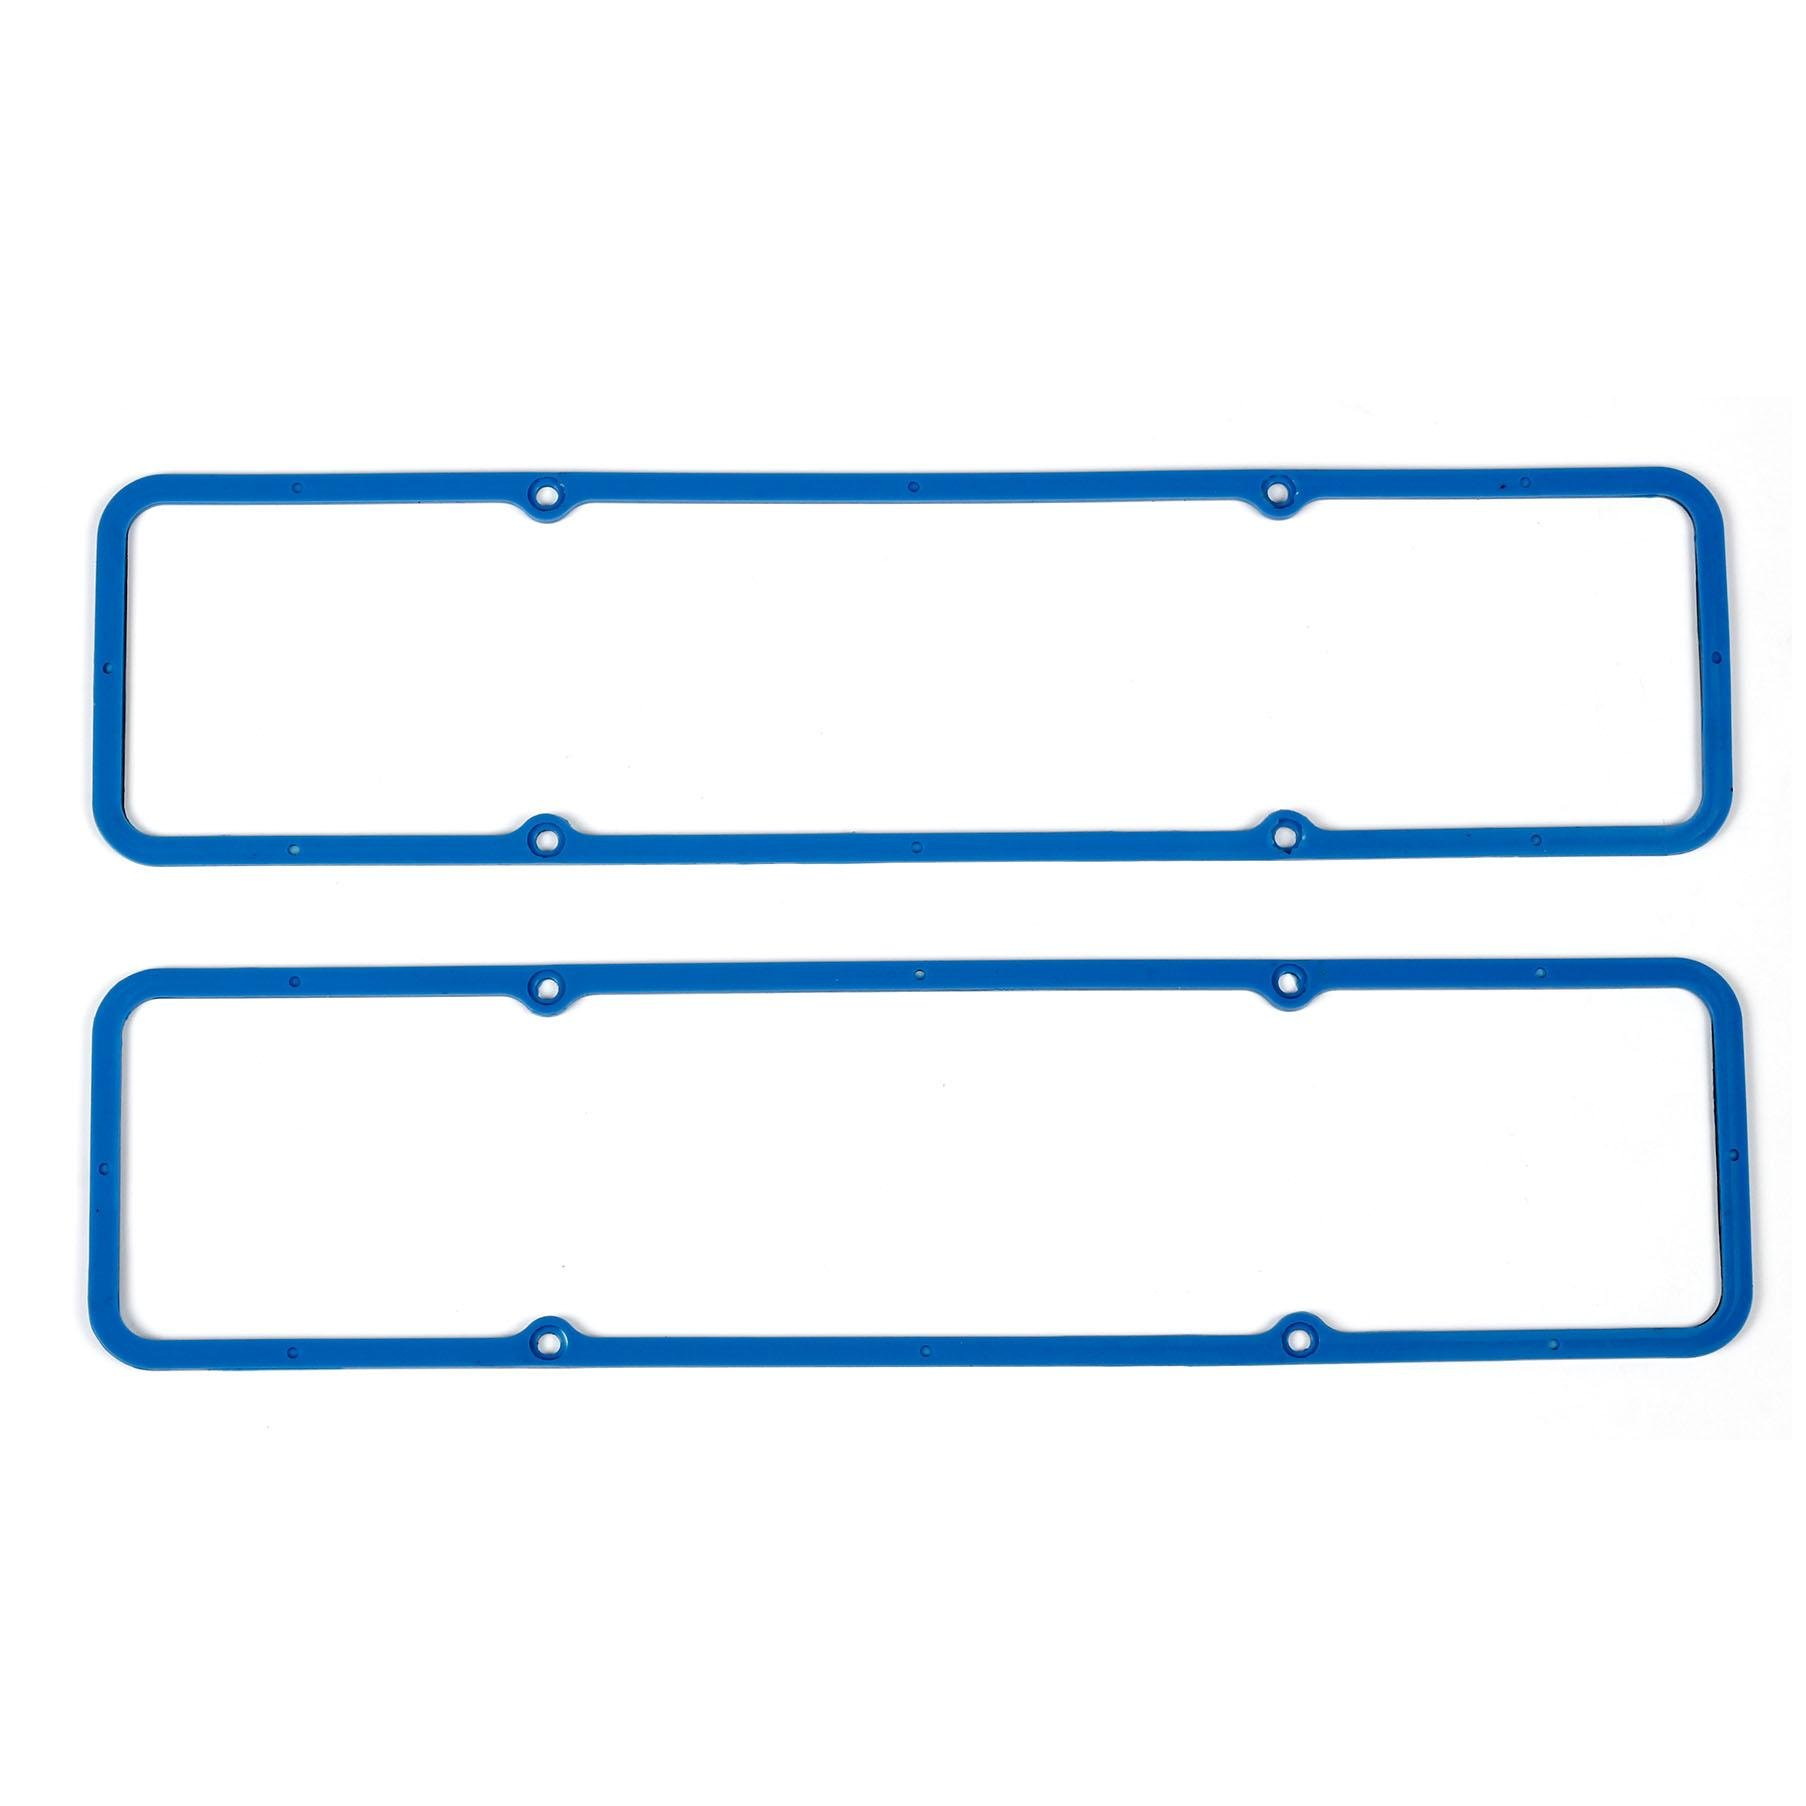 Replacement For SB CHEVY 283 305 327 350 383 400 Rubber Silicone Valve Cover Gasket 7484BOX